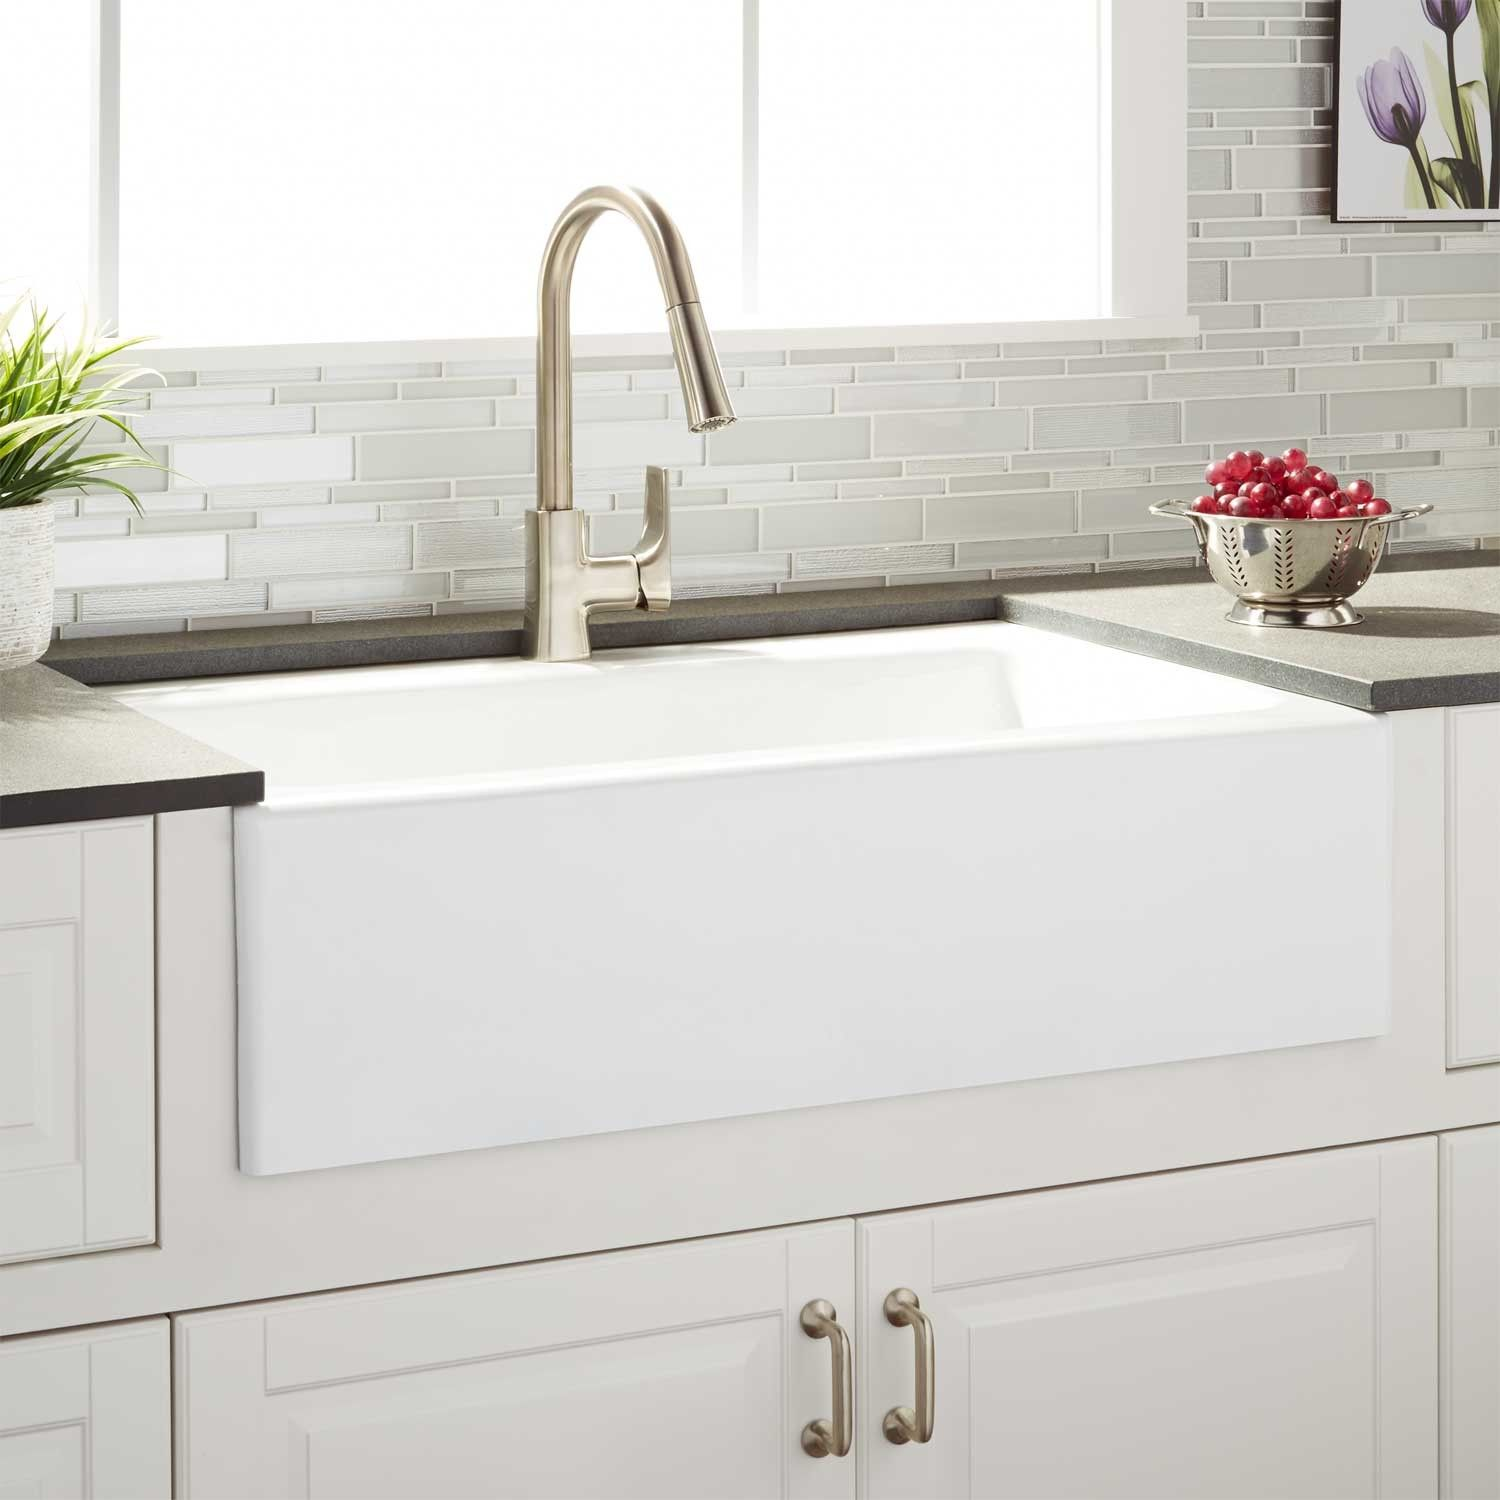 Fireclay Kitchen Sink Used Kitchens For Sale 33 Quot Almeria Cast Iron Farmhouse Furniture